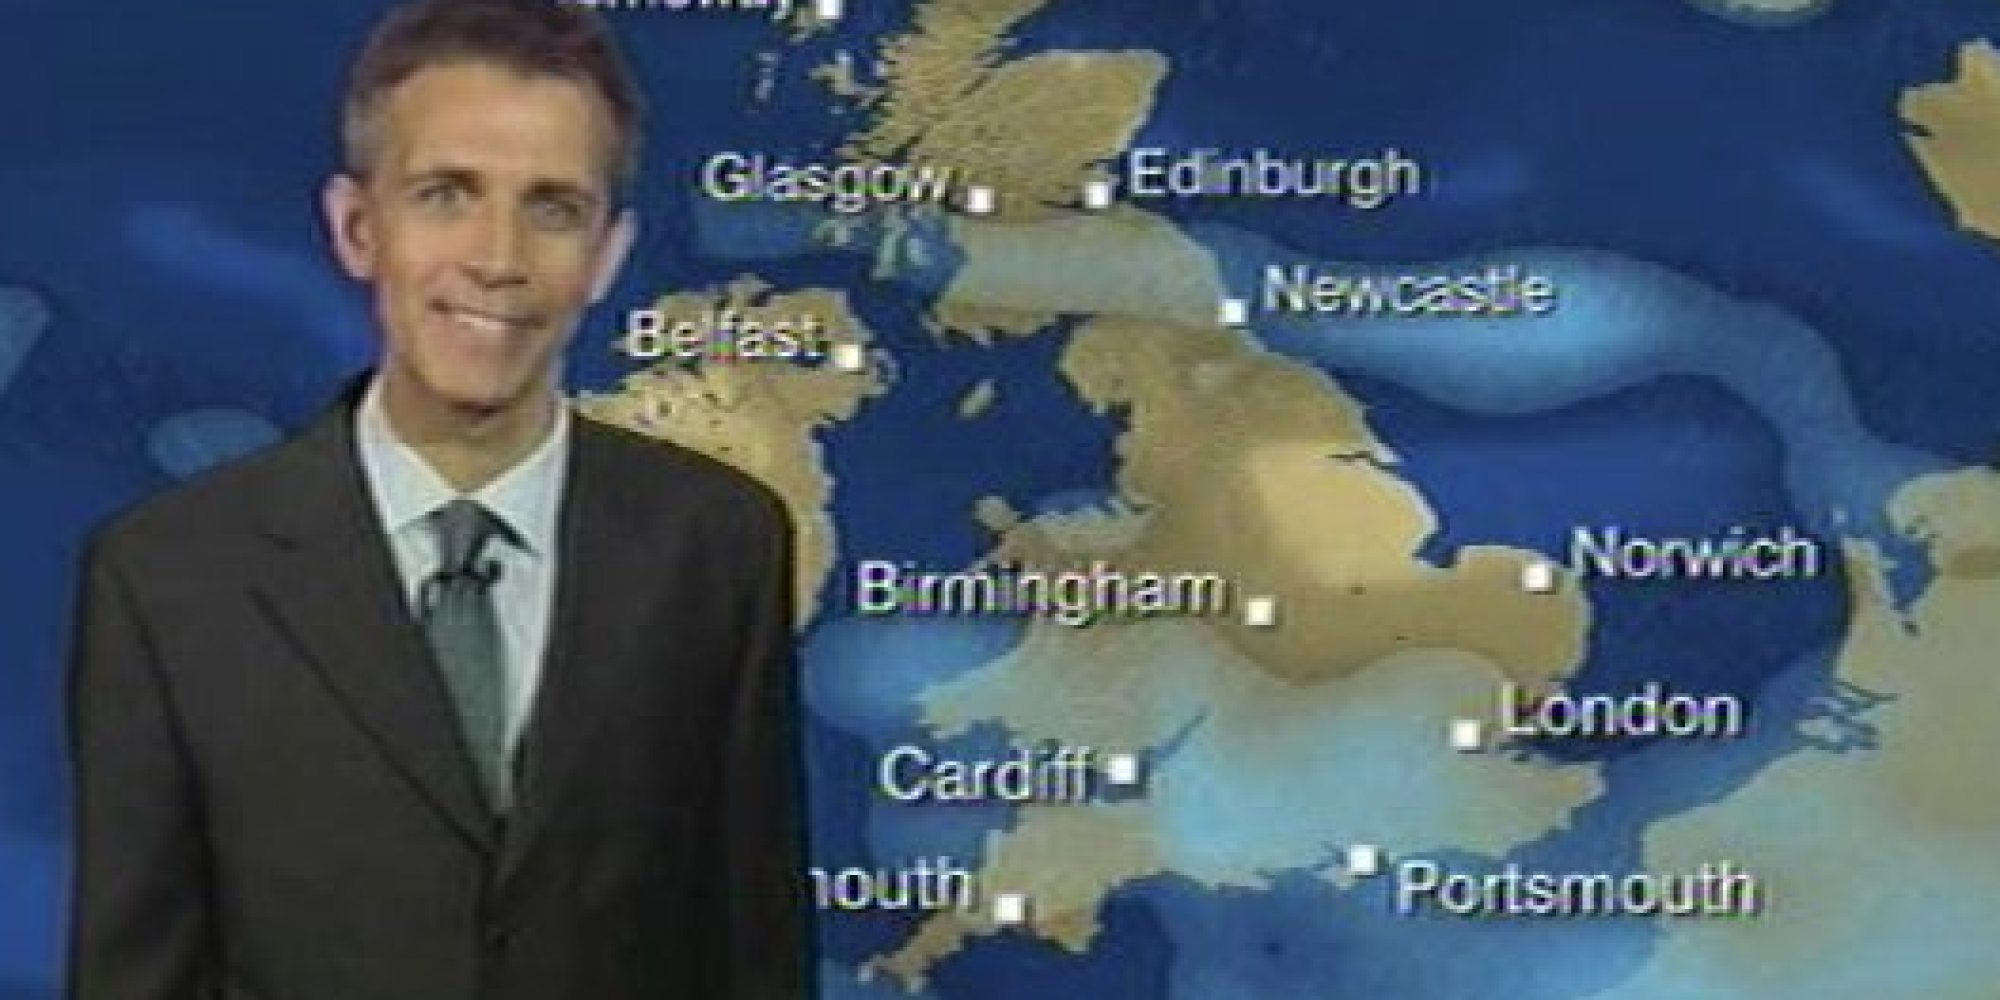 Bbc weather - Met Office Chief Says Bbc Had Not Discussed Money Before Ditching Forecasts Contract So Why Have Weather People Been Dumped Huffpost Uk